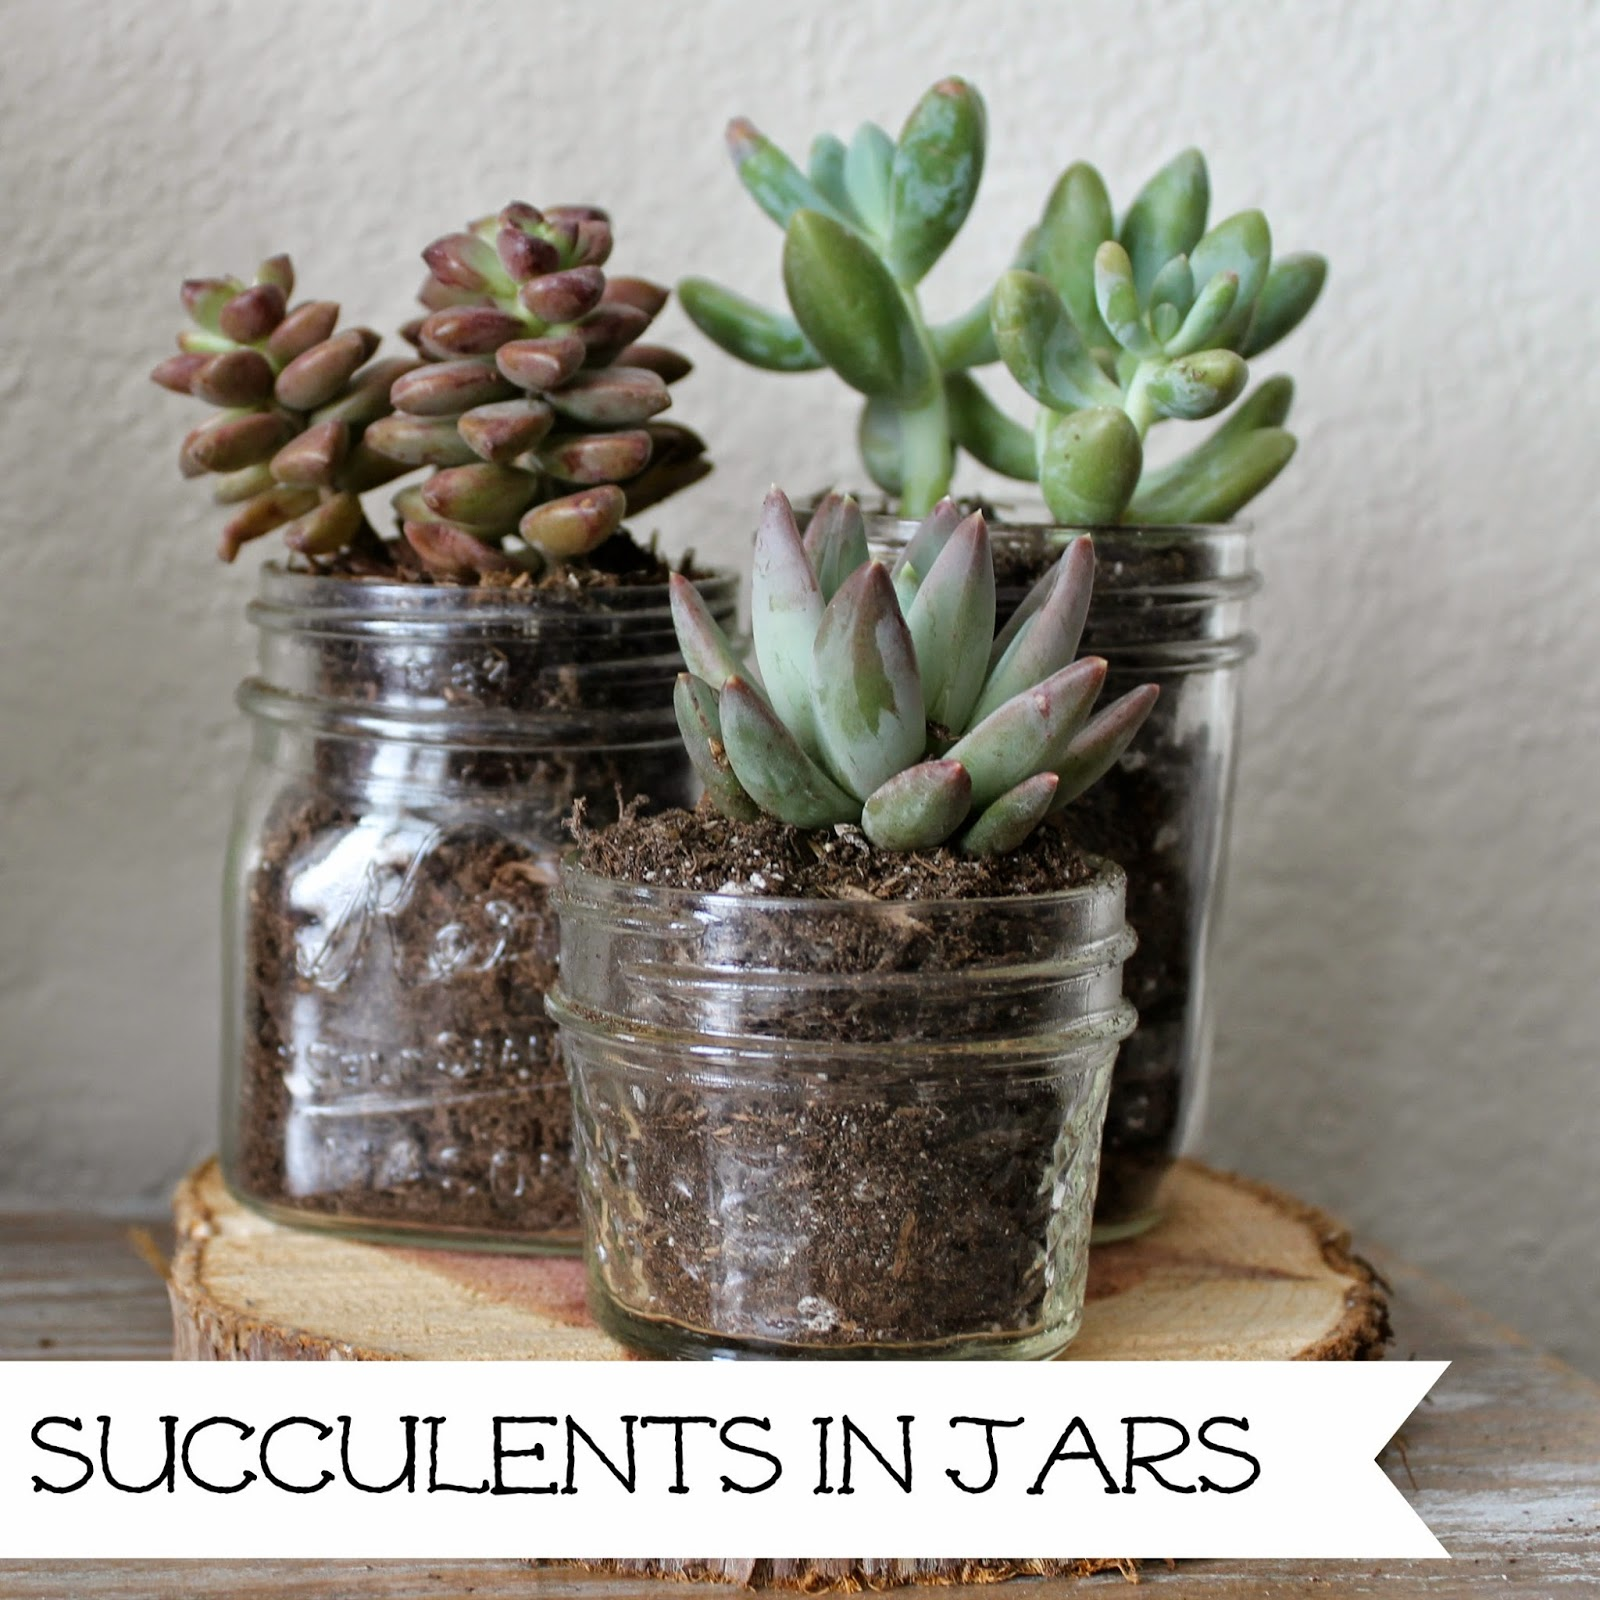 http://wonderfullymadebyleslie.blogspot.com/2014/05/succulents-in-jars.html